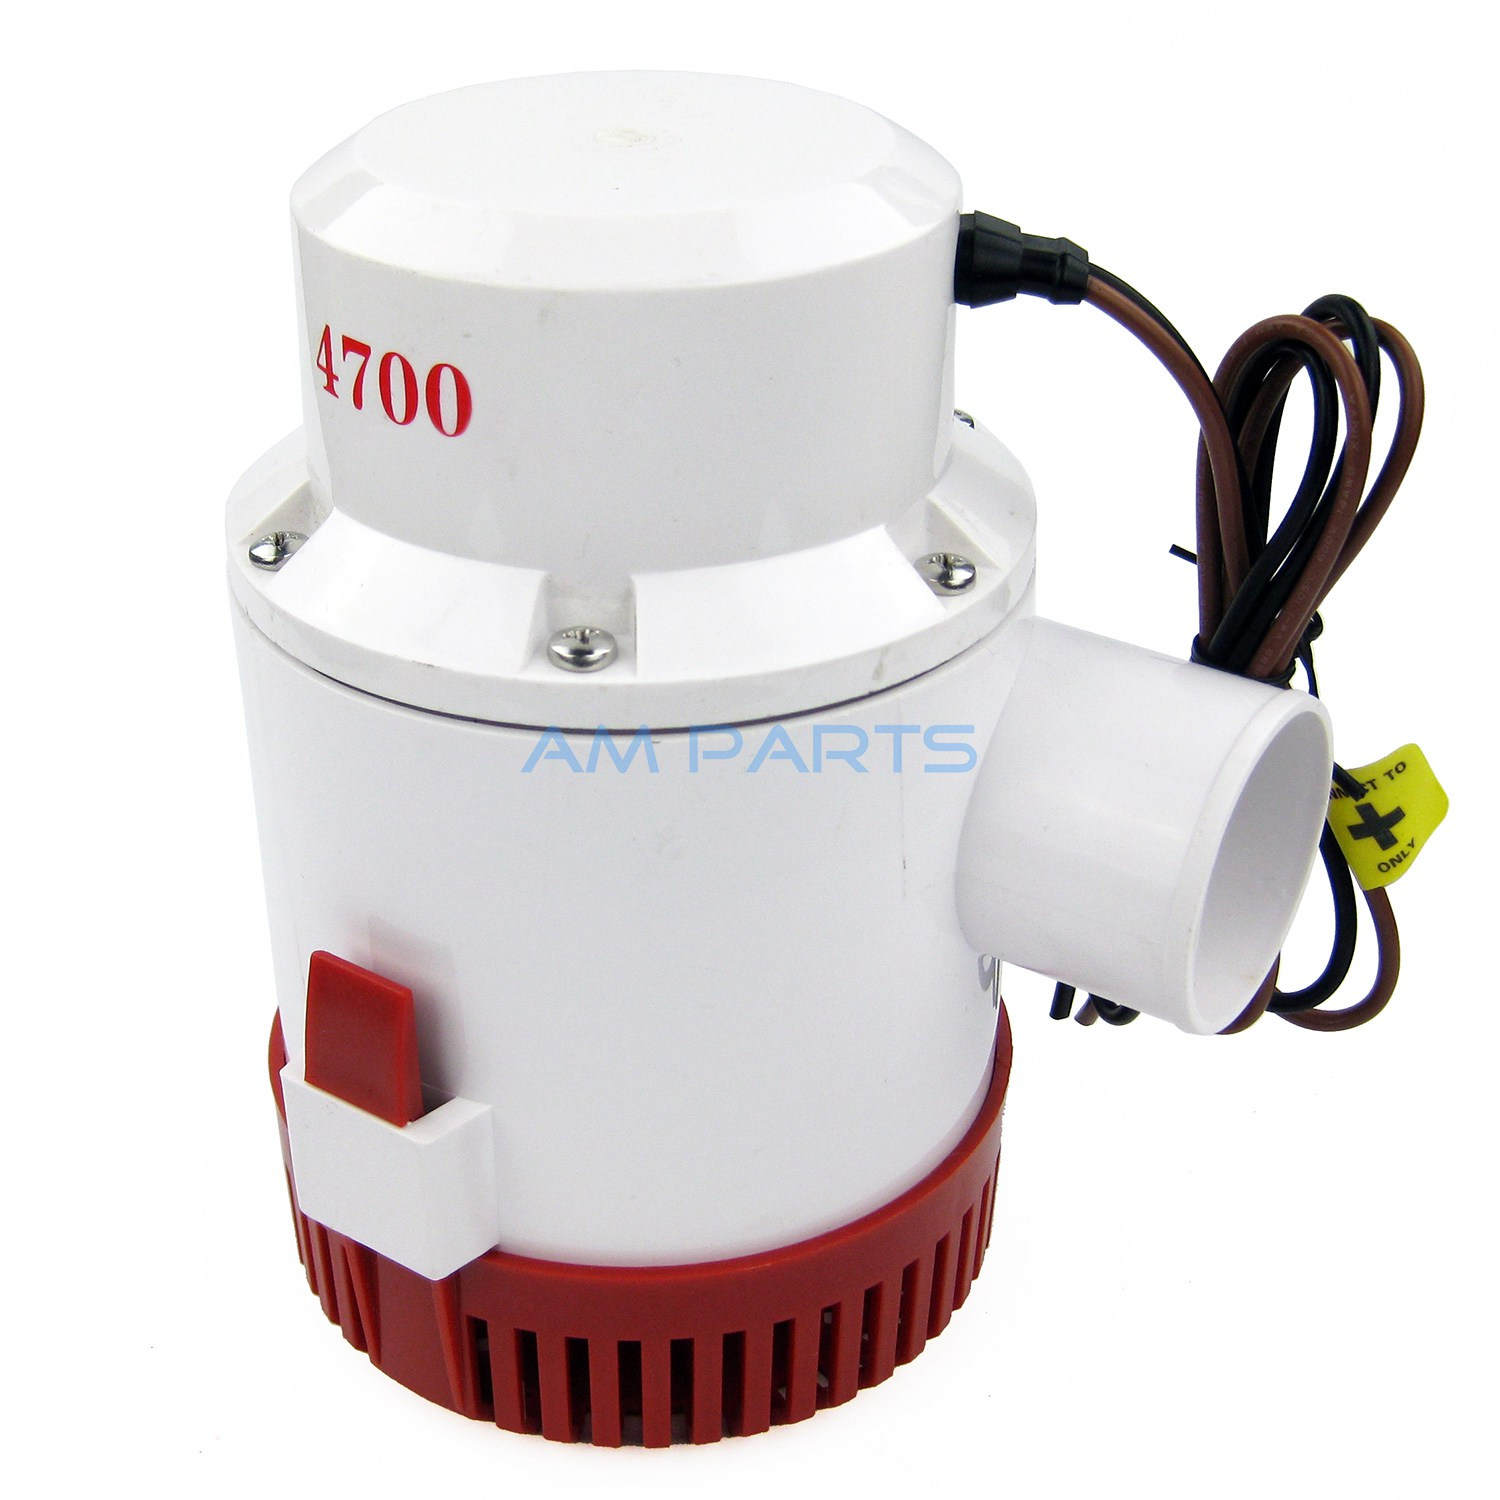 12V 4700 GPH Marine Bilge Pump Boat Water Pump Yacht Submersible Pump sailflo new mini bilge pump marine water aspirator fountain submersible yacht boat electric marine bilge pump